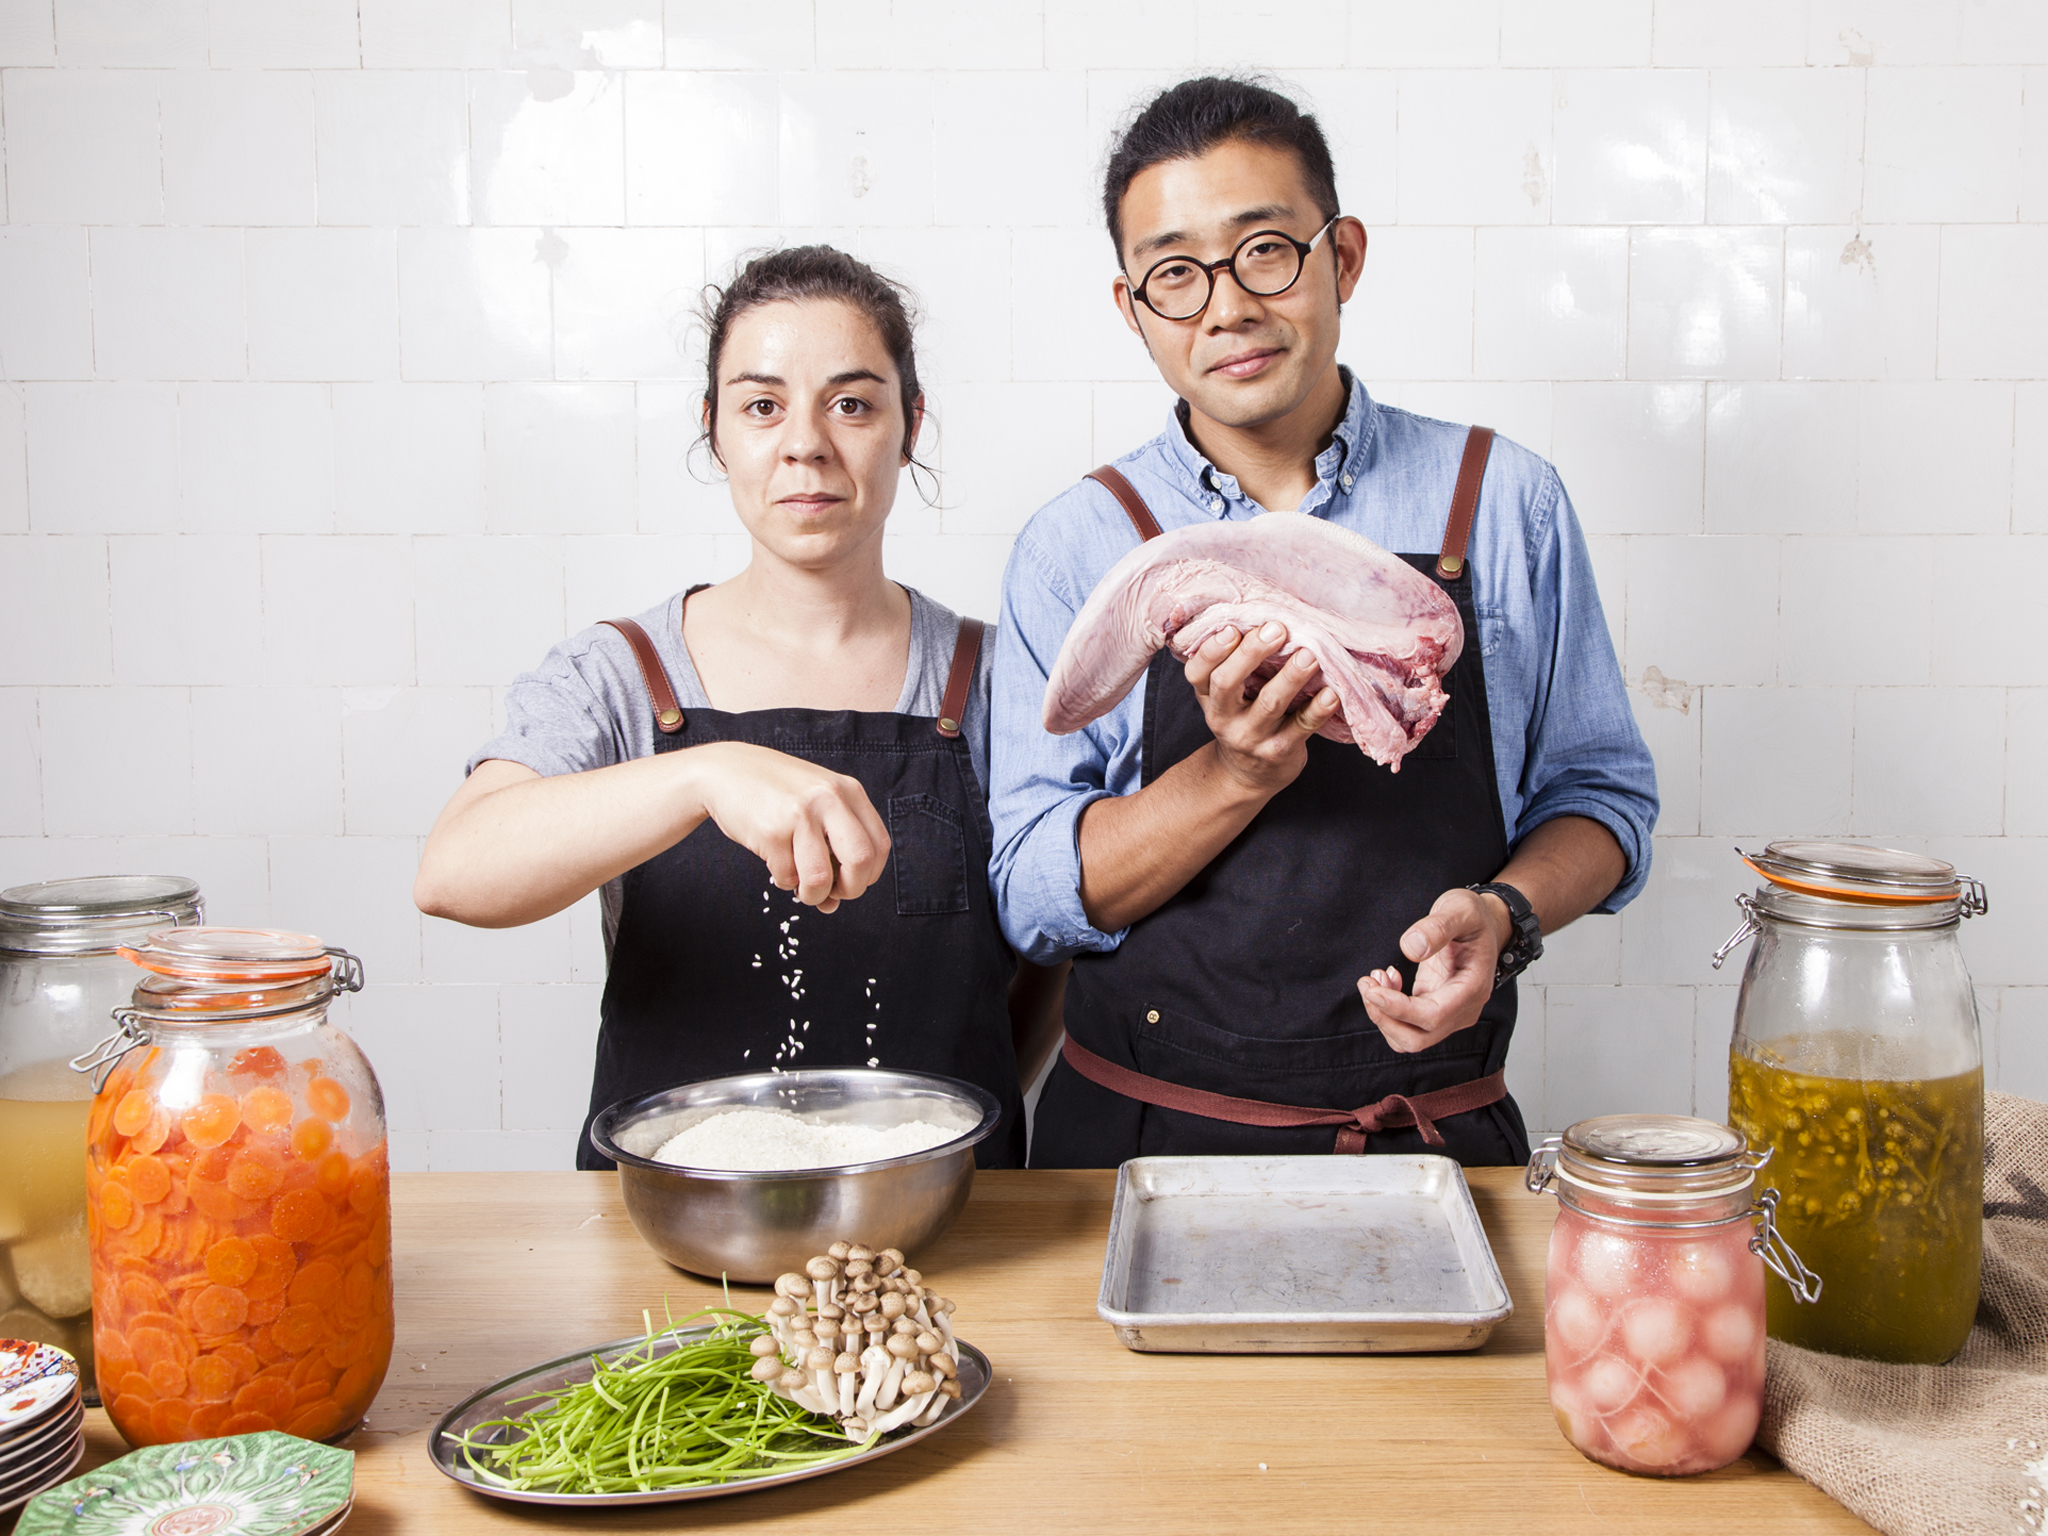 ana goncalves and zijun meng, curio and tata, london's hottest chefs